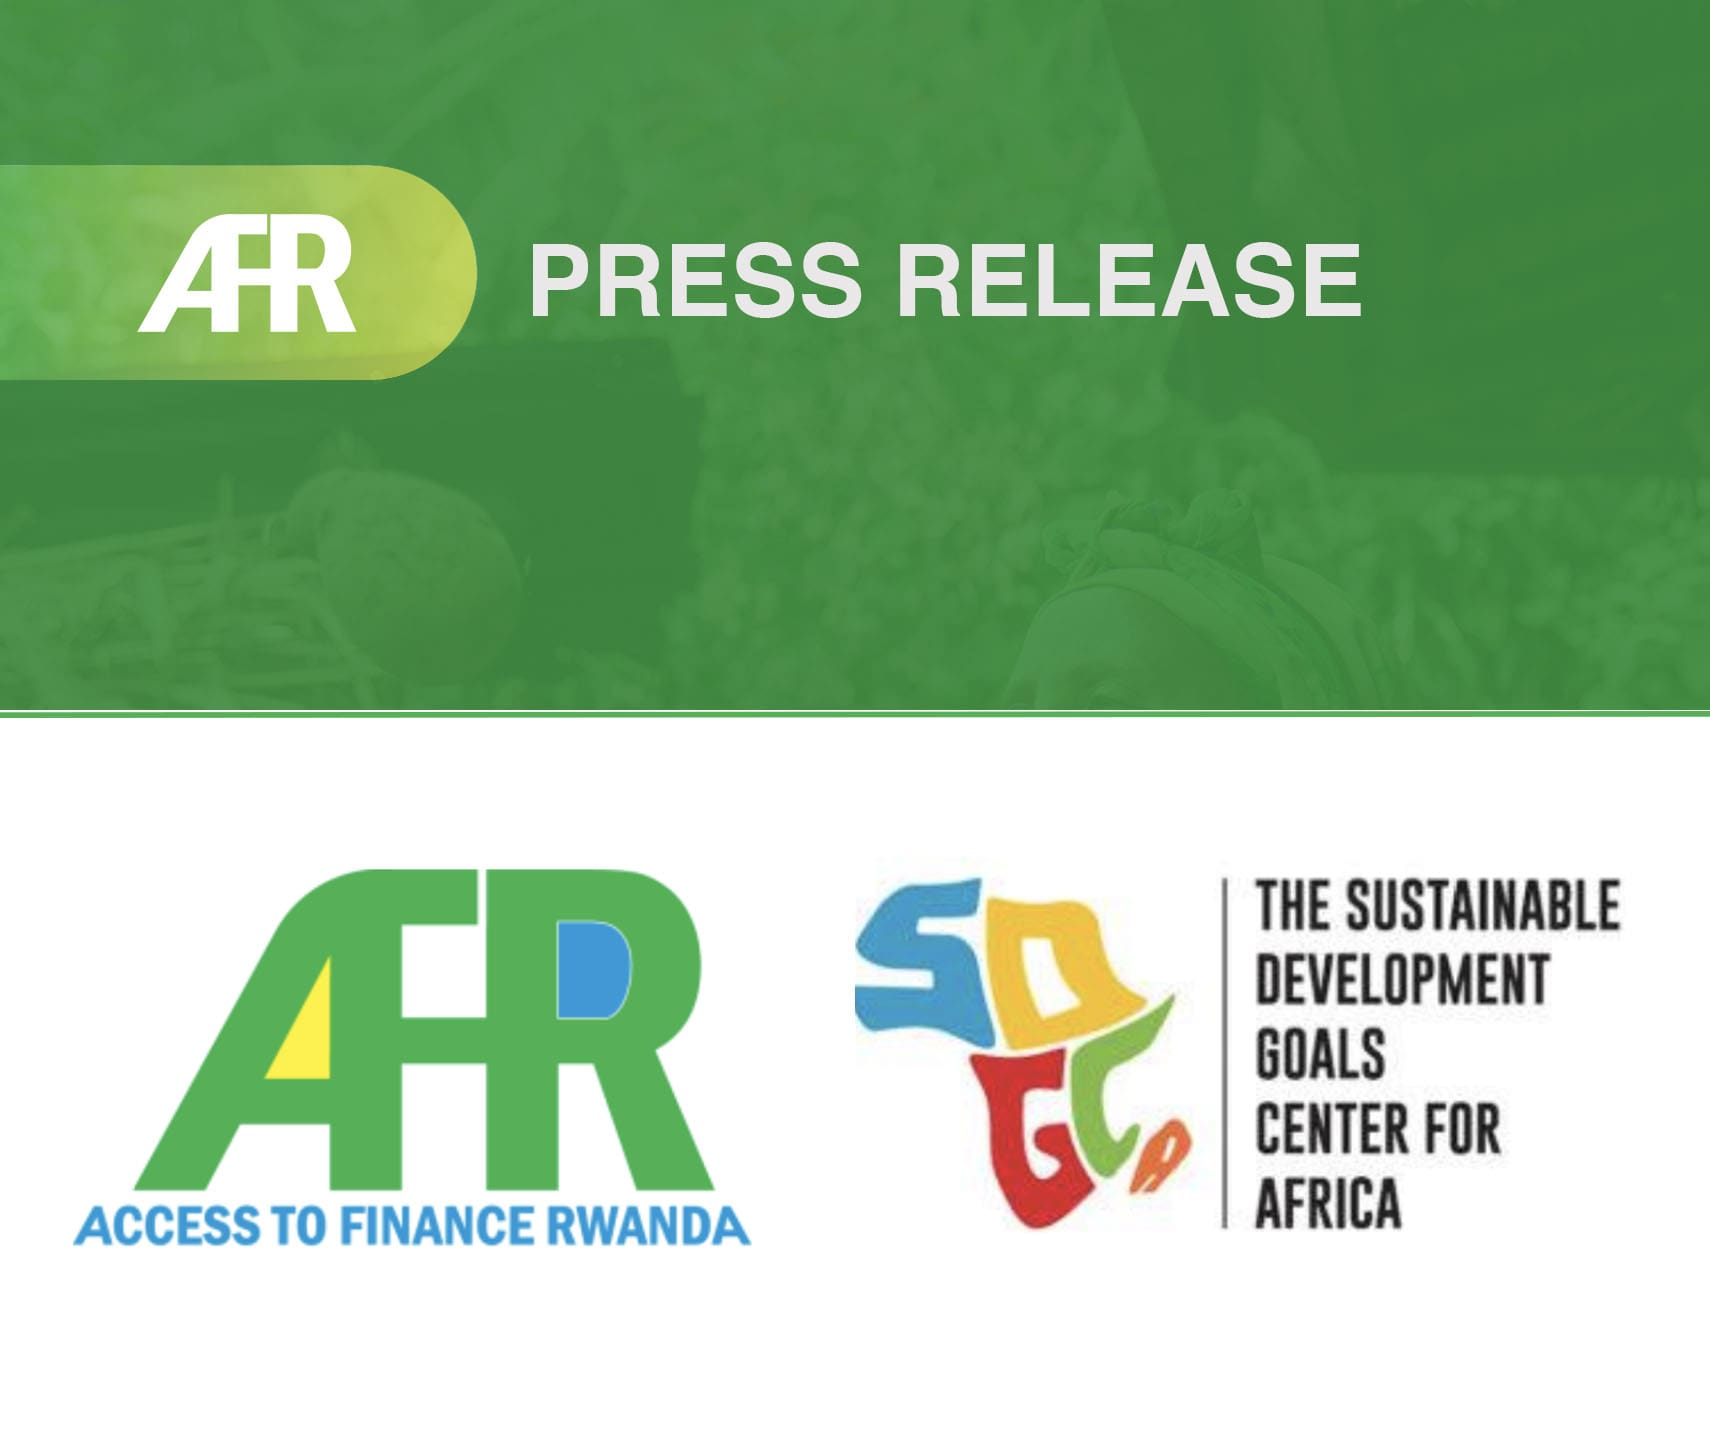 Access to Finance Rwanda and the Sustainable Development Goals Center for Africa to collaborate on strengthening financial inclusion and financial sector development in Rwanda